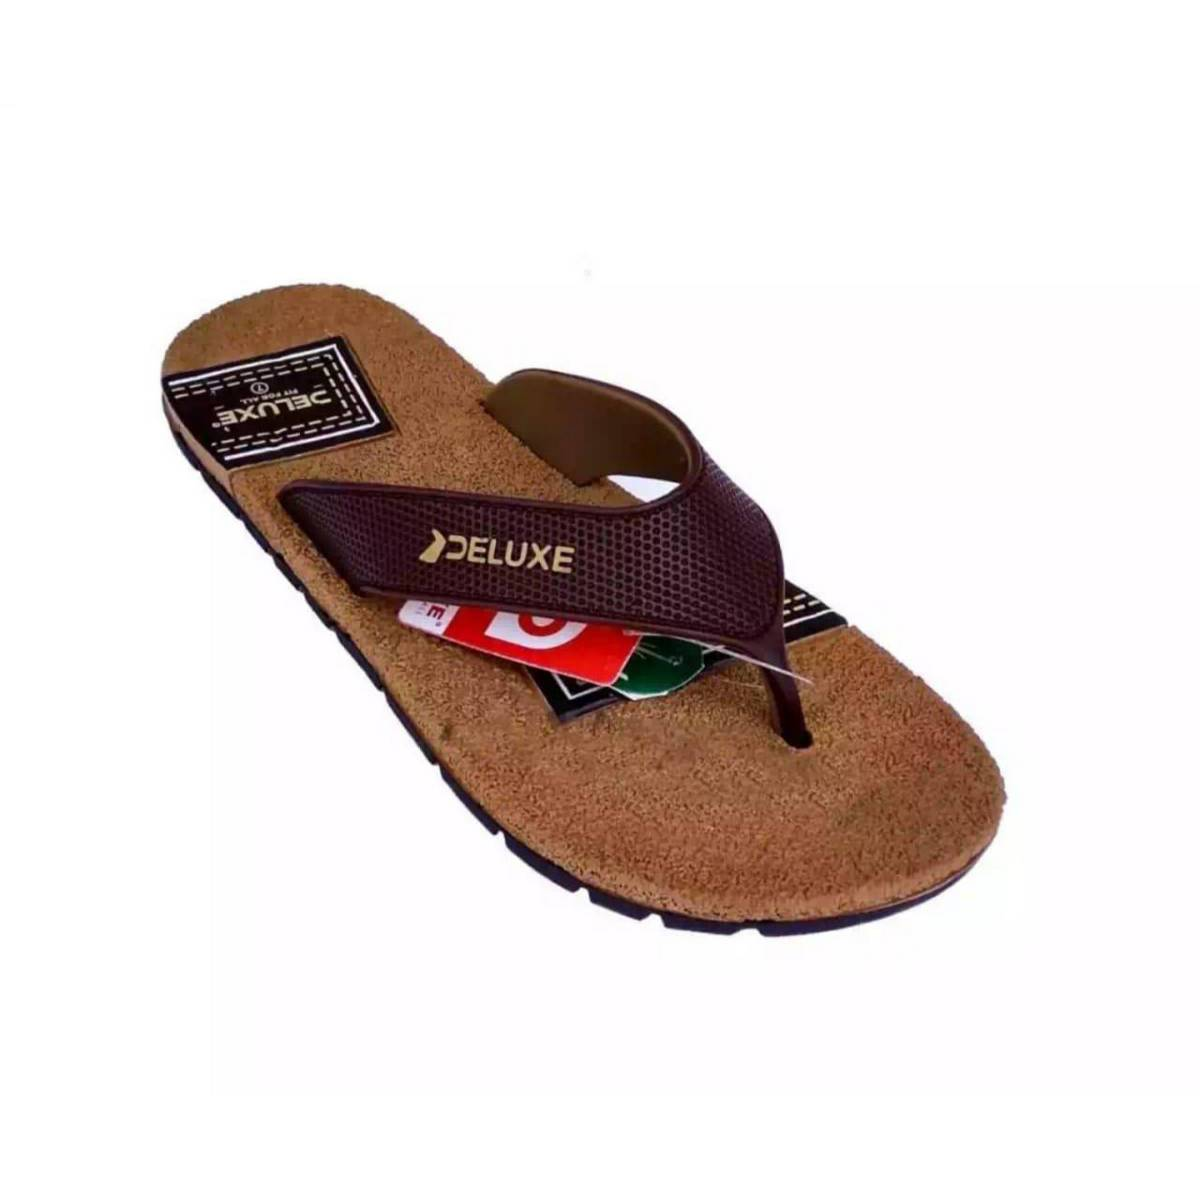 DELUXE CASUAL CHAPPAL FOR MEN FLIPFLOP MUSTARD IN COLOUR WITH LATEST DESIGN